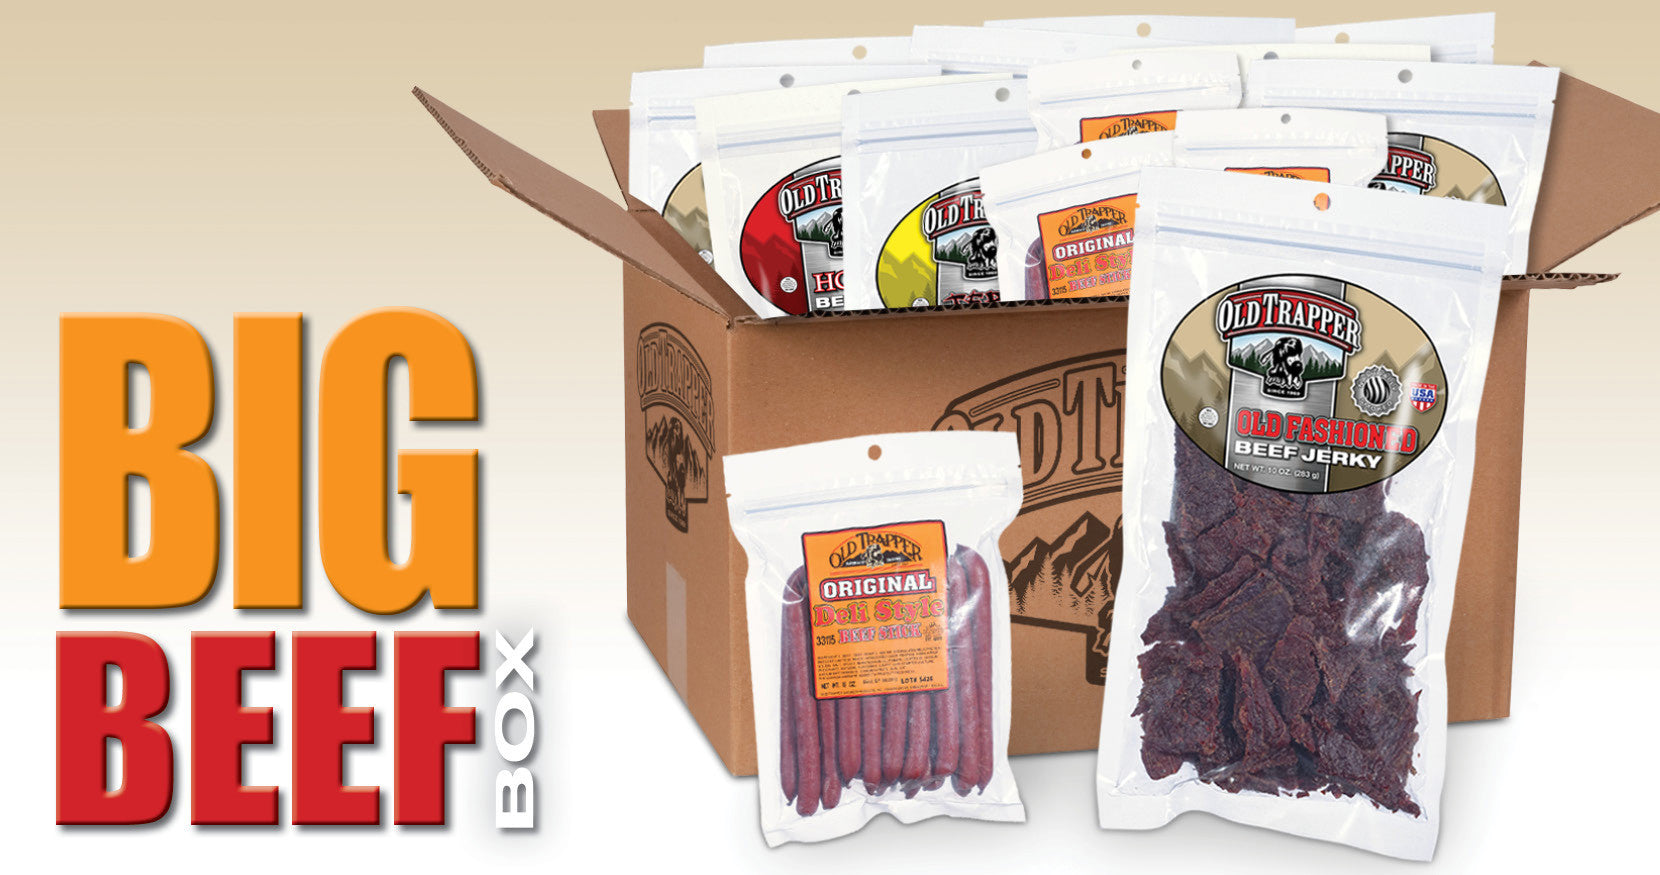 old trapper big beef box in front of snowy Christmas tree forest with 12 big bags of beef jerky and 4 big bags of deli sausage sticks on sale for $32 off